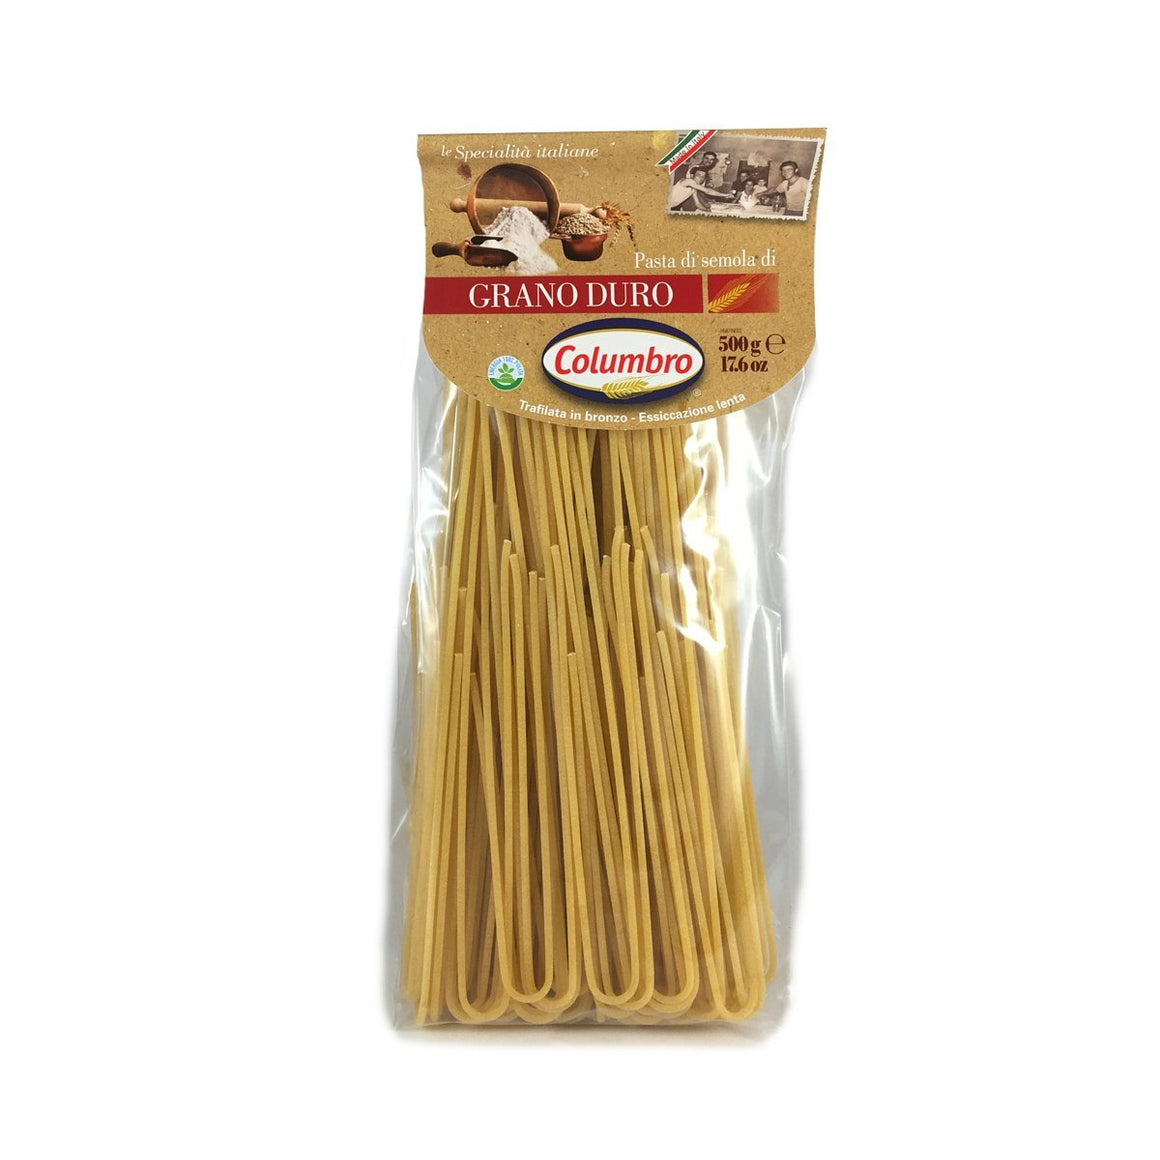 Spaghettoni Italian specialties of durum wheat - PepeGusto